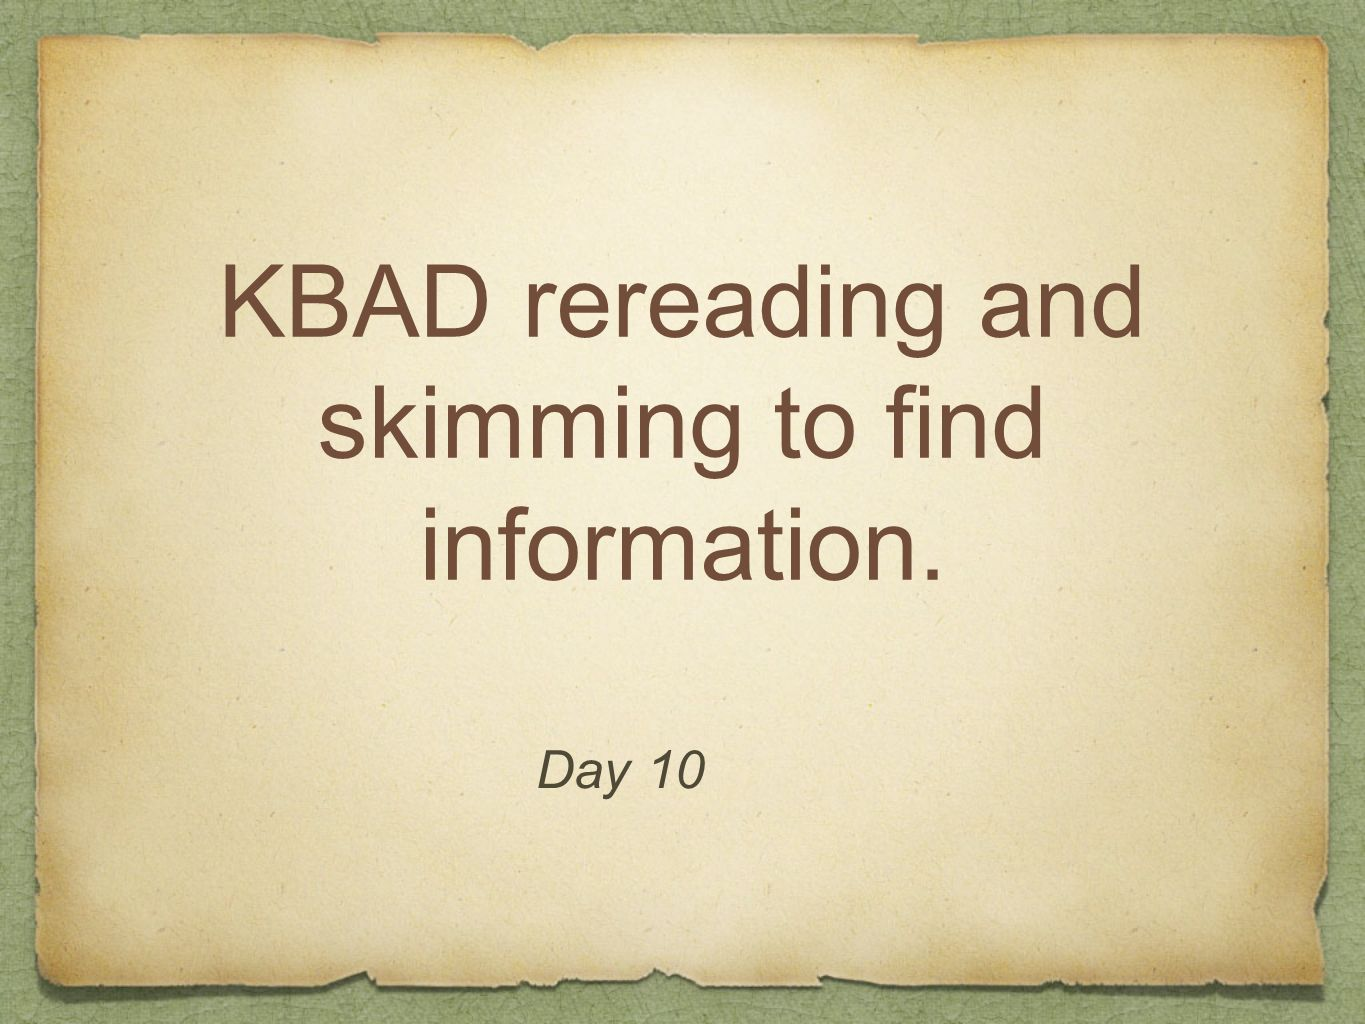 KBAD rereading and skimming to find information.